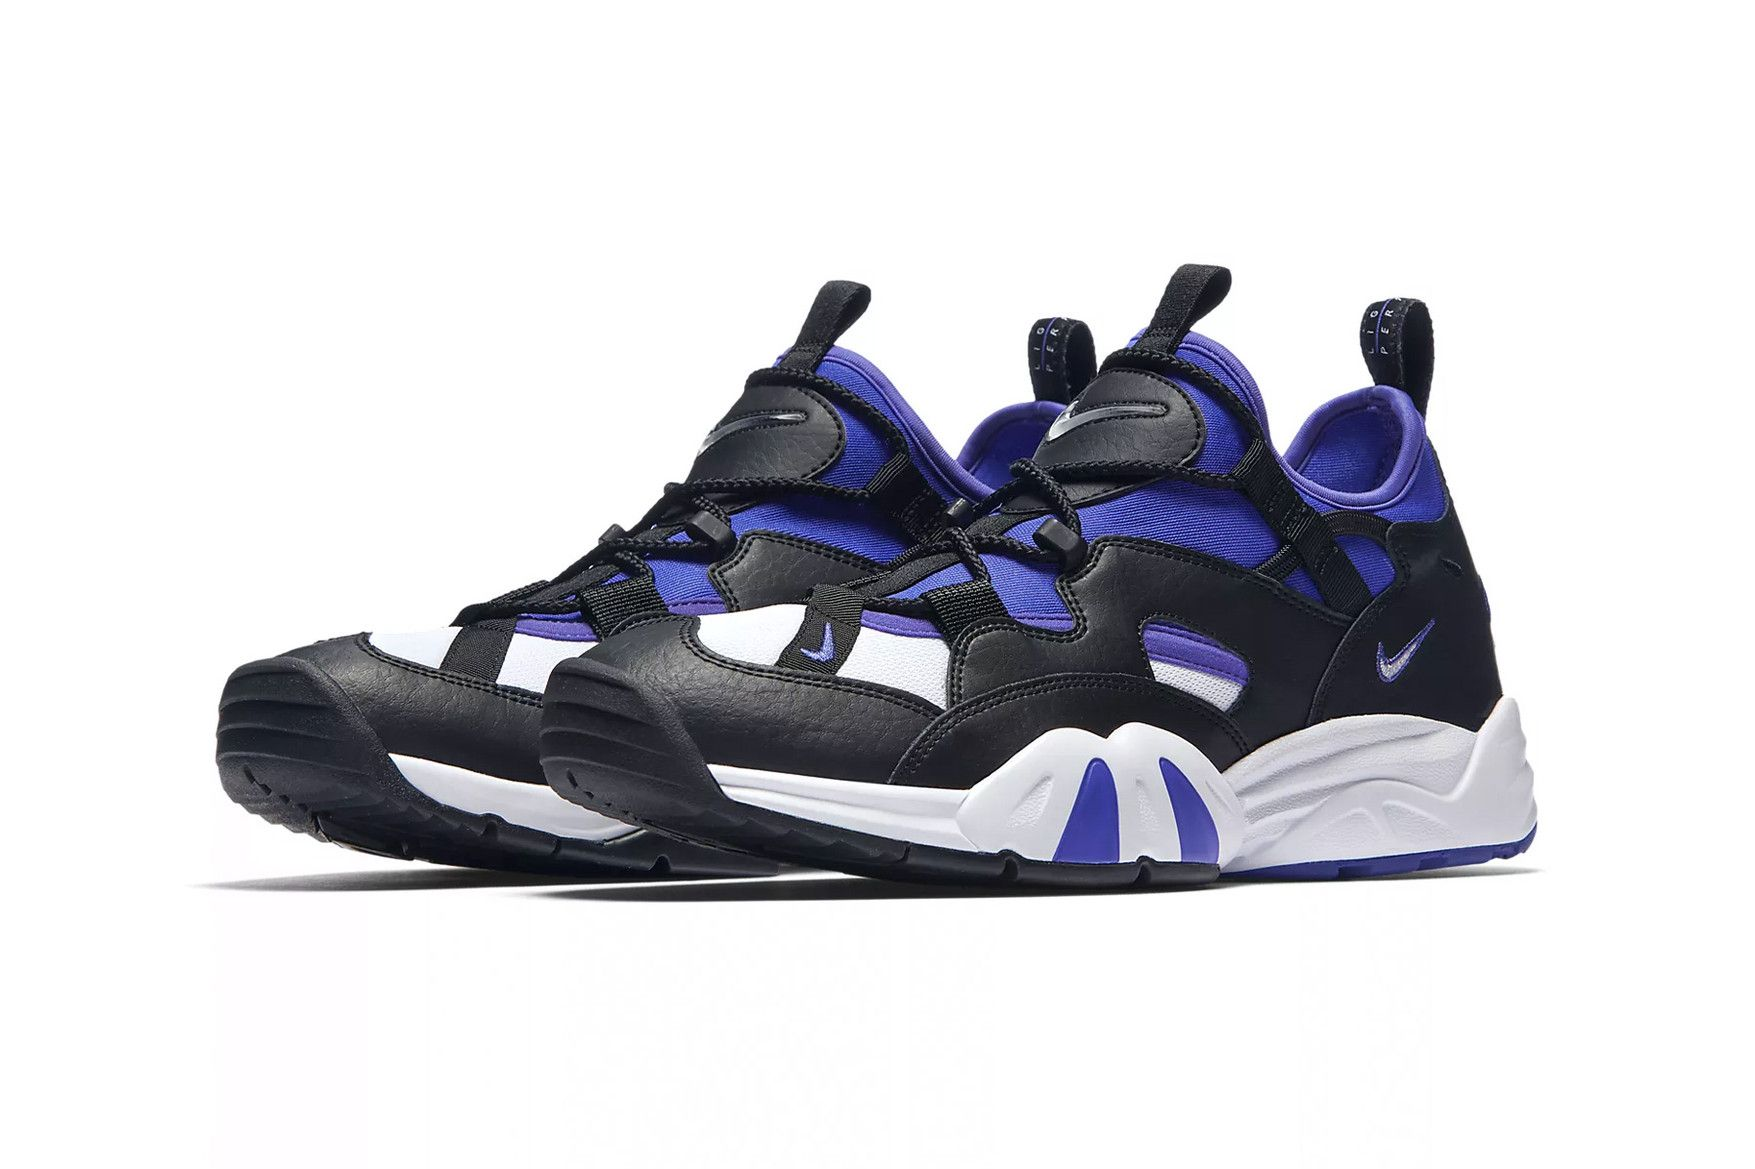 82604047bef950 Nike Air Scream LWP Persian Violet release date available now purchase  price sneaker